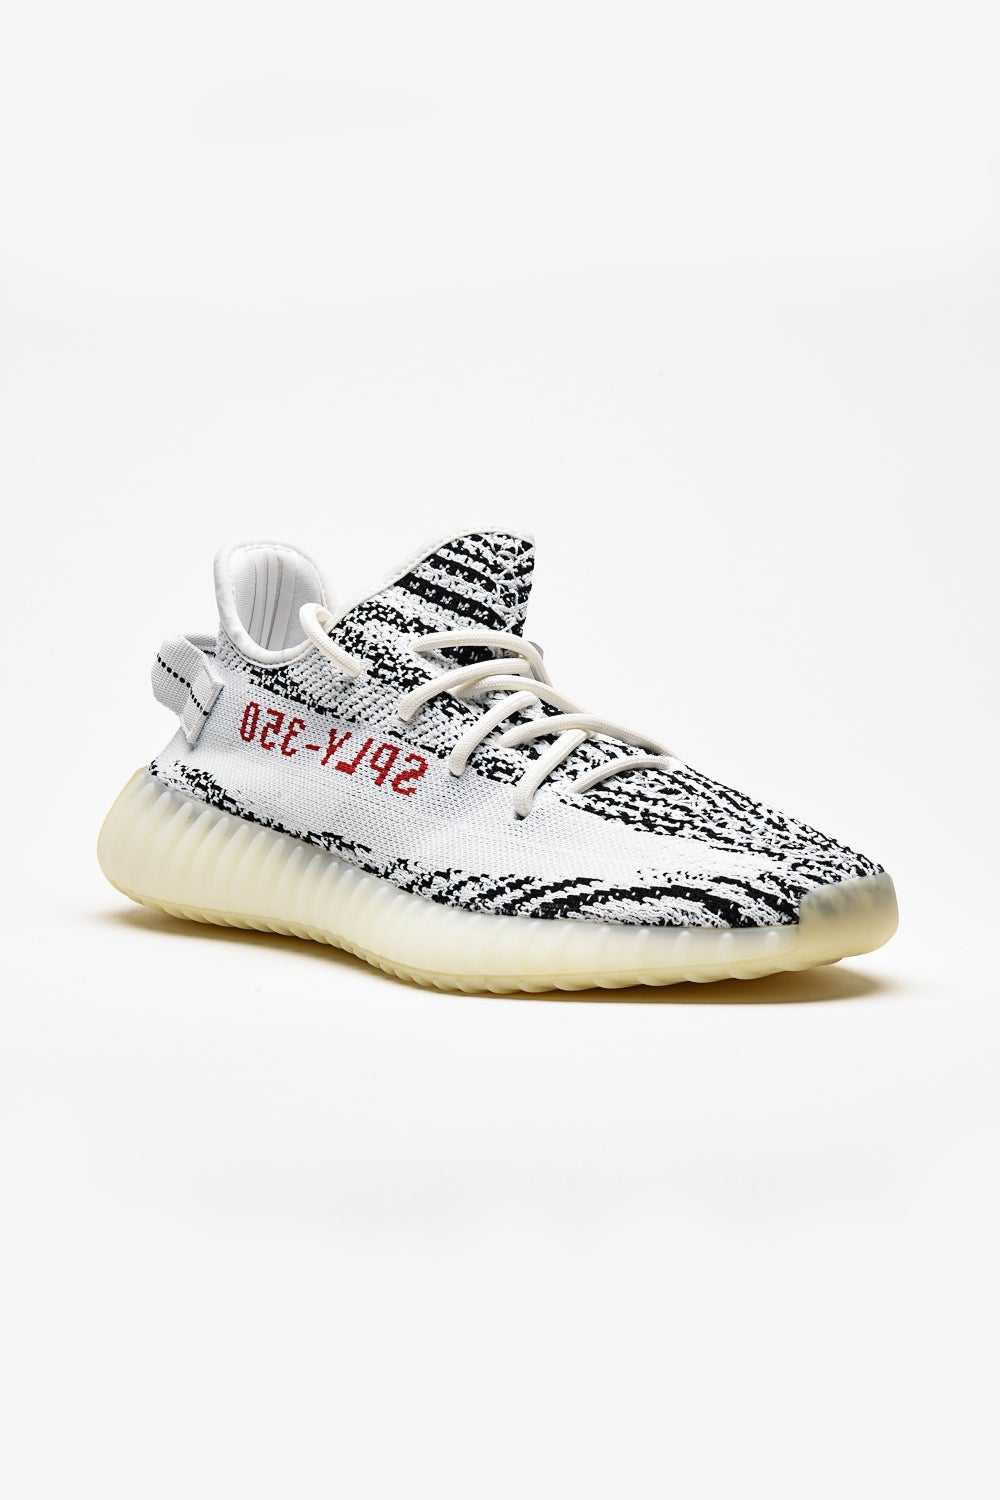 e5654277247a4 Fresh Kicks Houston — Adidas Yeezy Boost 350 V2 - Zebra